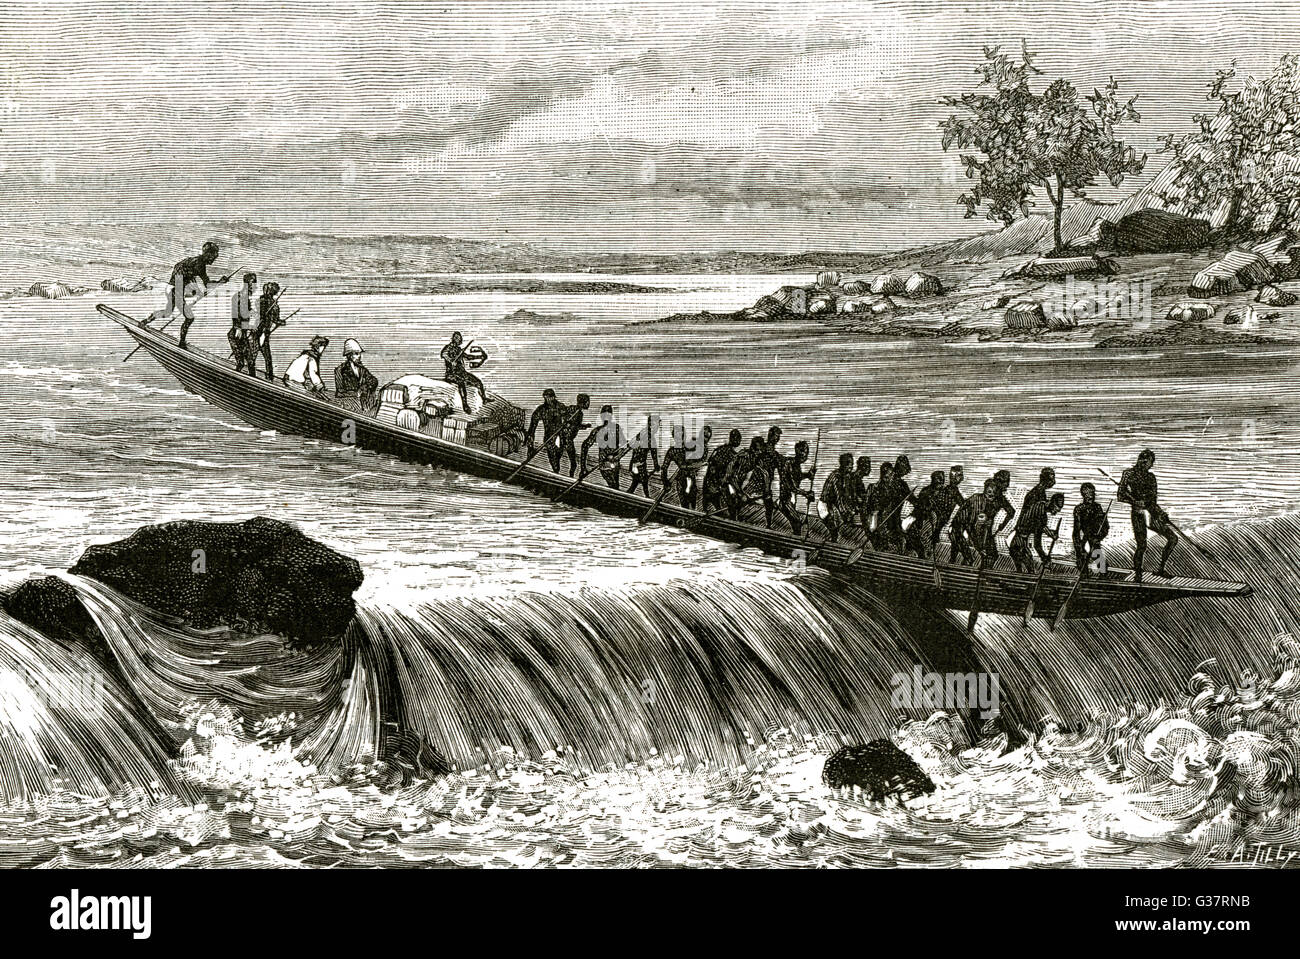 Brazza's explorations in equatorial Africa -  negotiating rapids on  the River Ogooue      Date: 1875 -1878 - Stock Image